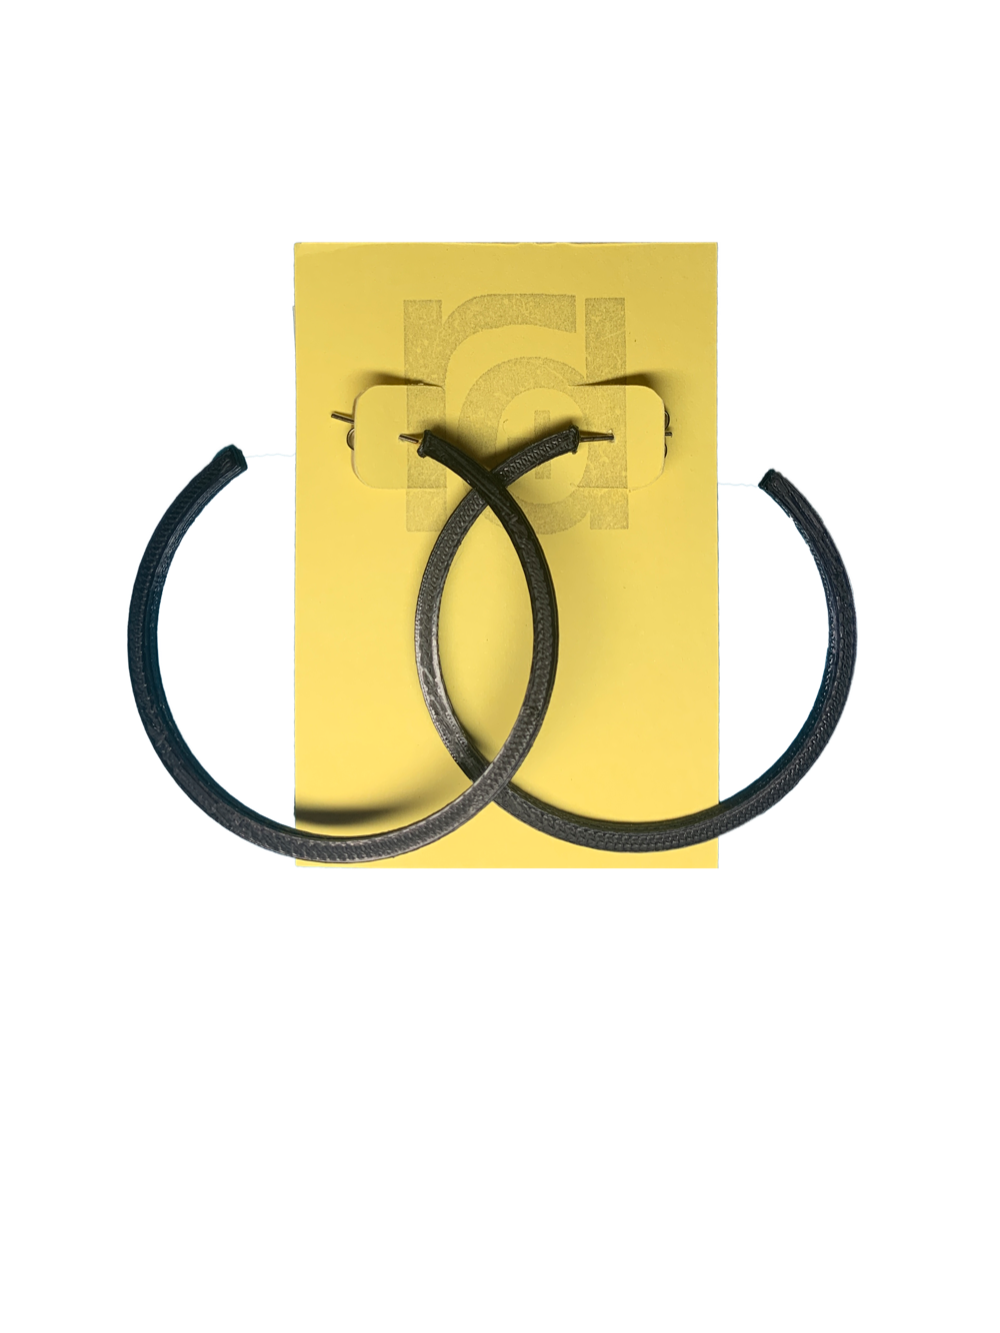 Shown on a yellow R+D card are two 3D printed hoop earrings. They are large two inch hoops in a black that are lightweight and plant based.